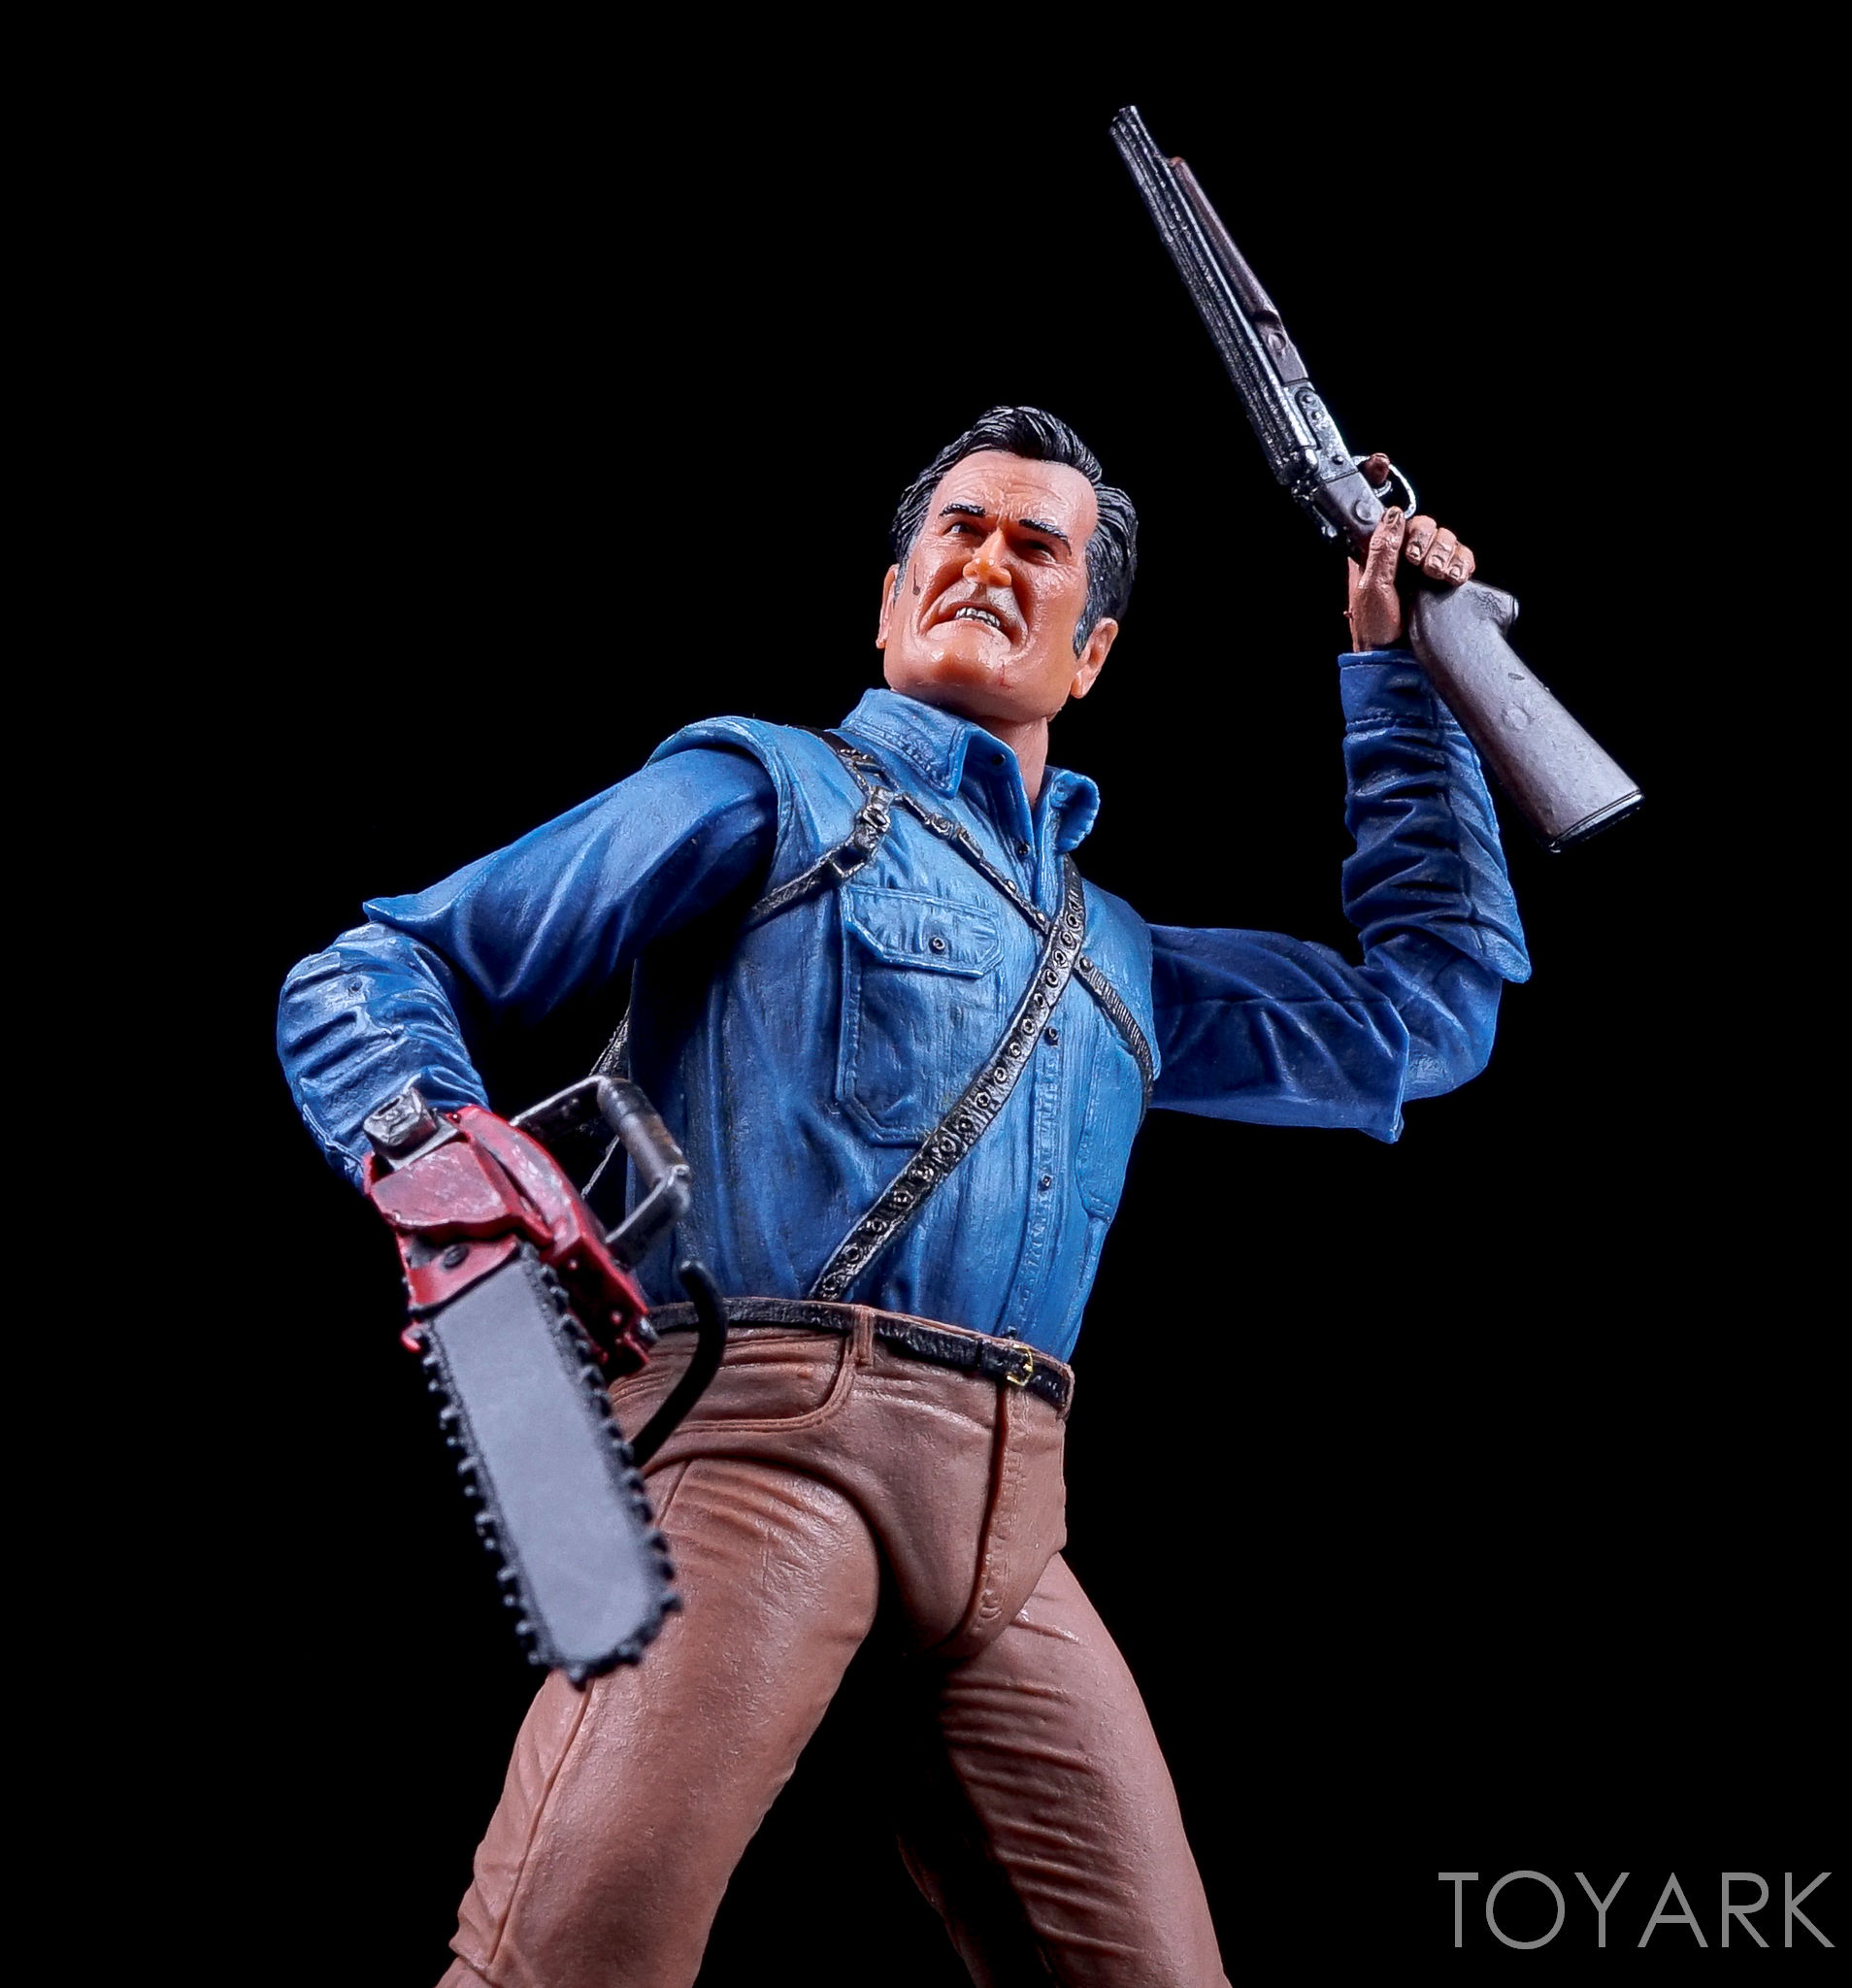 http://news.toyark.com/wp-content/uploads/sites/4/2016/09/Ash-vs-Evil-Dead-Series-1-NECA-100.jpg